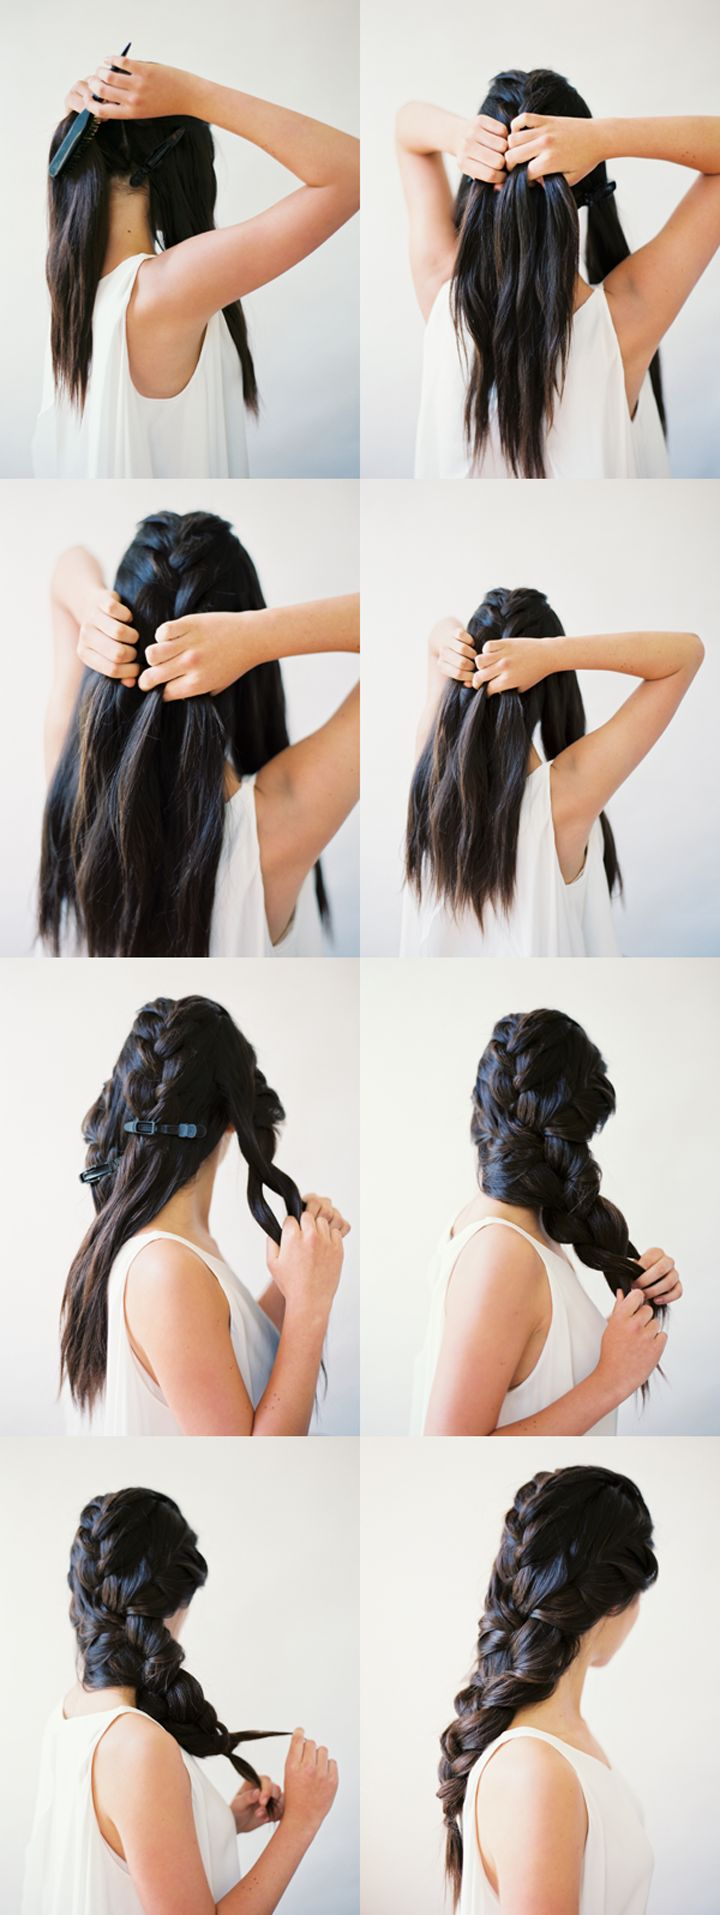 DIY - Beautiful Big Braid - Step by Step Hair Tutorial